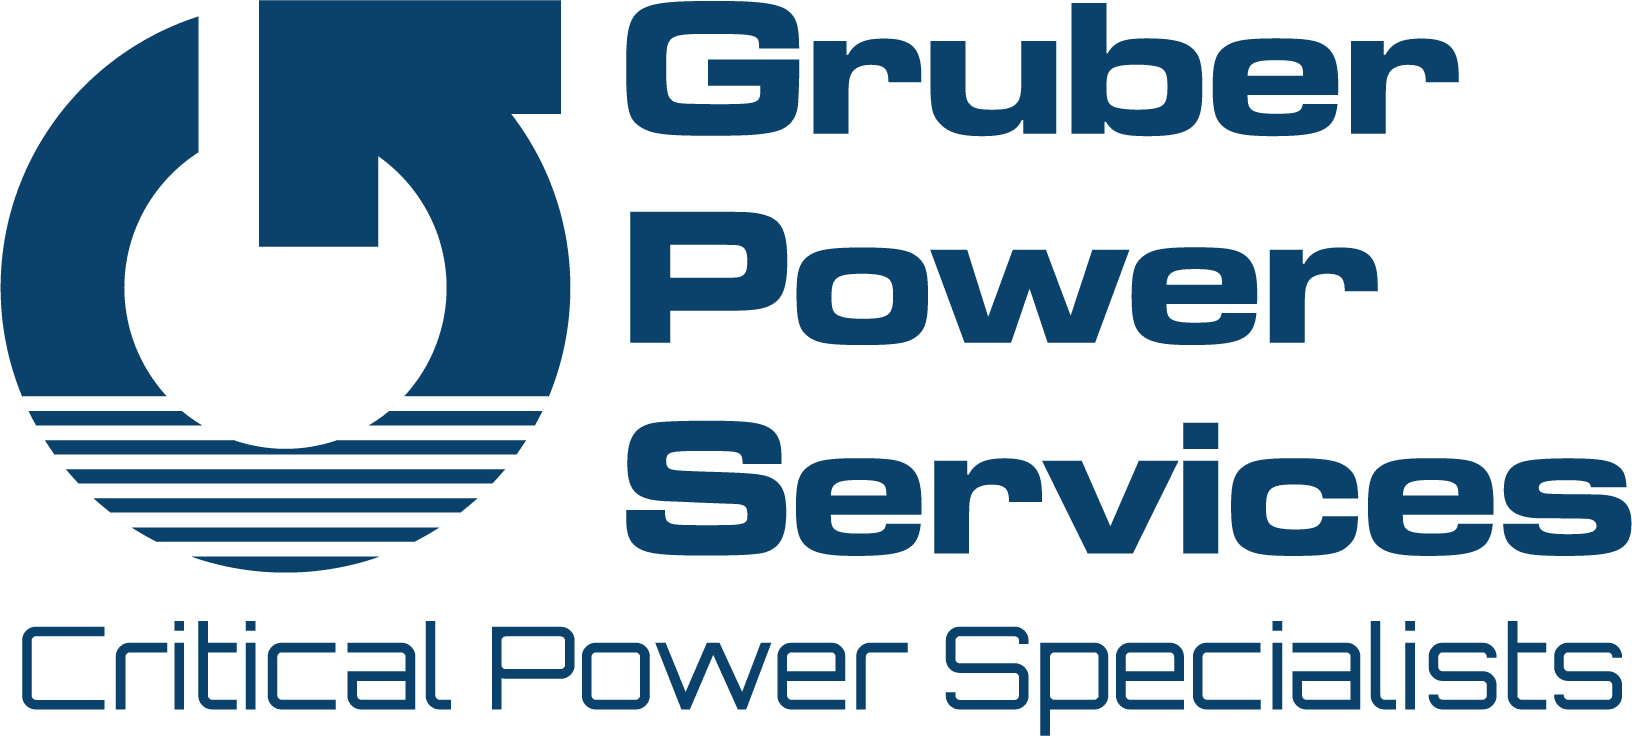 https://gruber.com/wp-content/uploads/sites/2/2019/11/Gruber-Power-Services_1.png